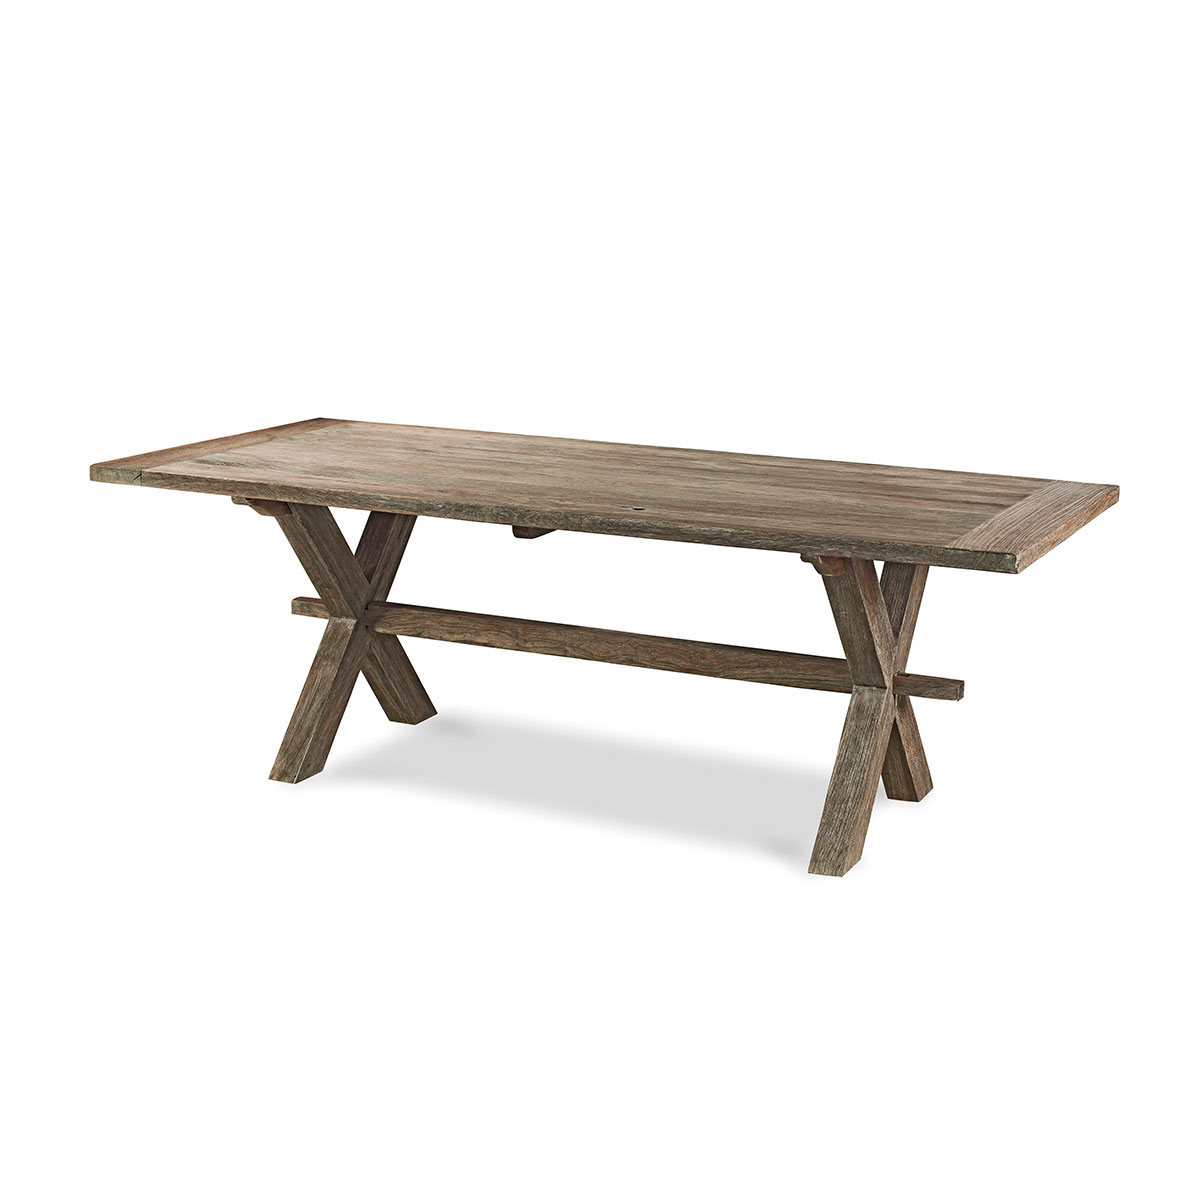 Rectangular wood dining table Tables Braid